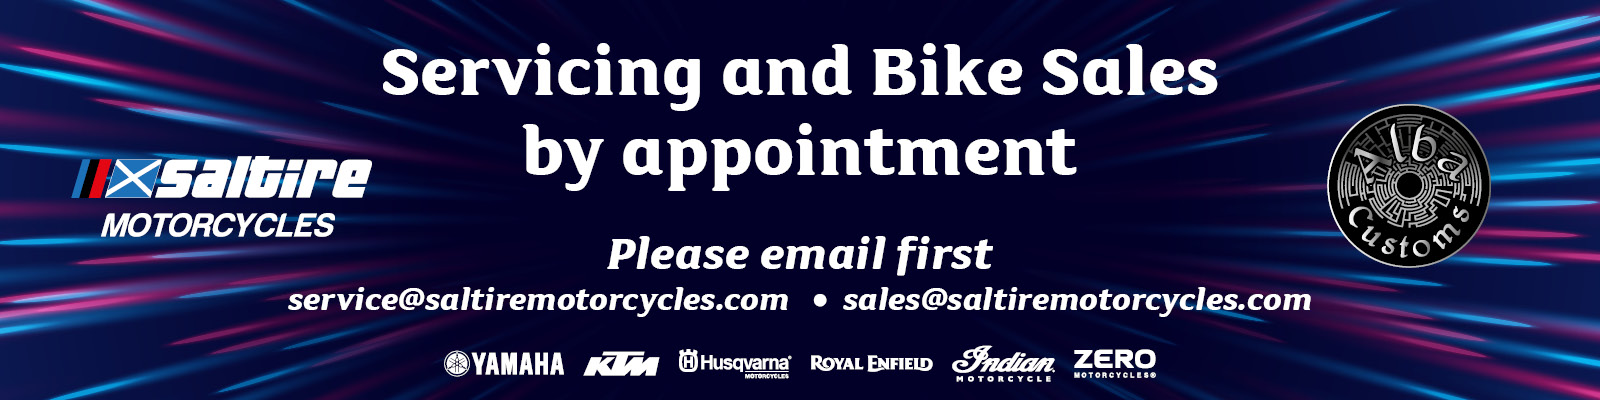 2020 Servicing and Bike Sales